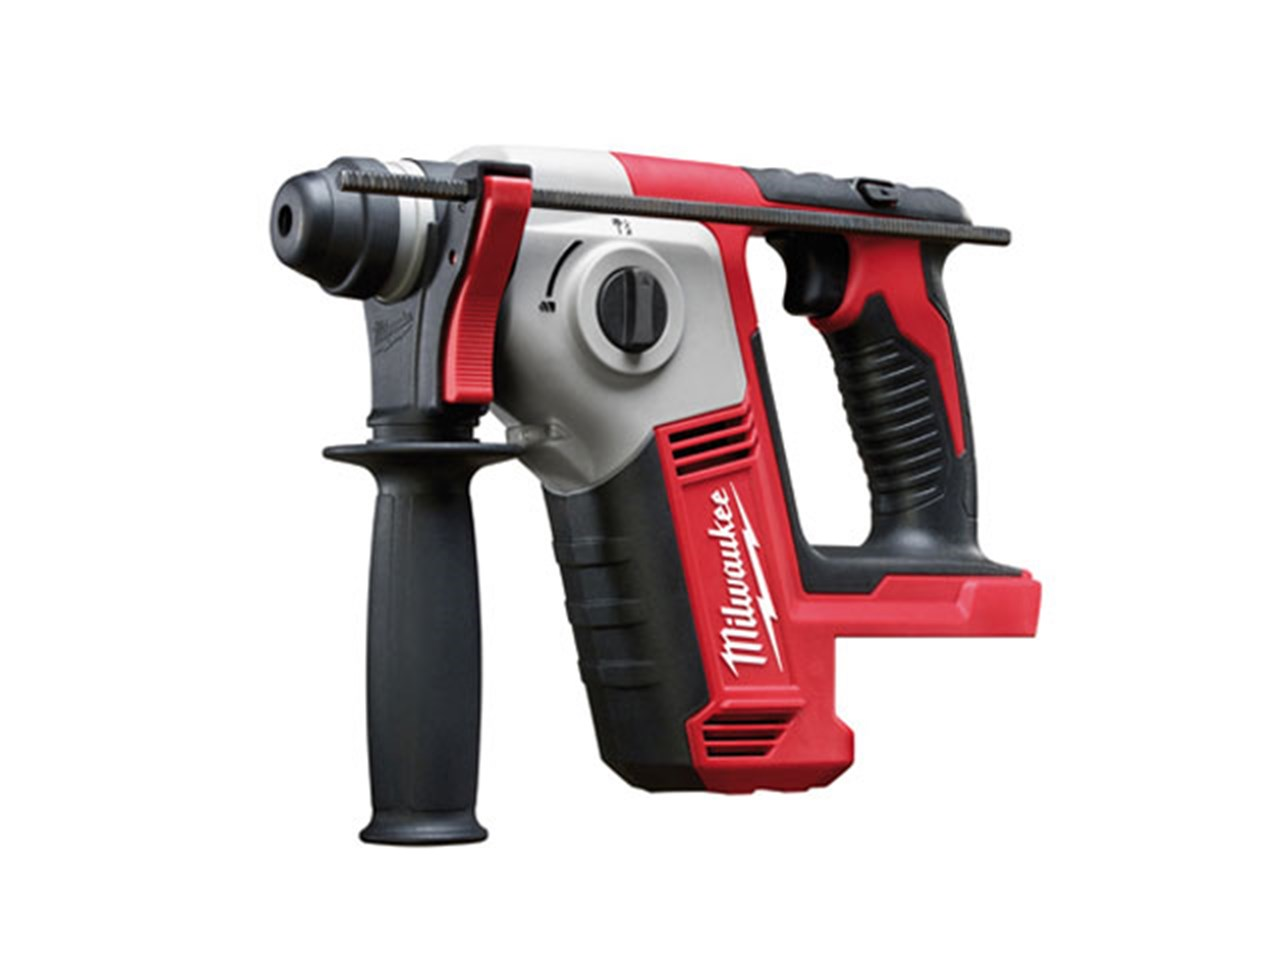 Milwaukee M18BH 18V Compact SDS+ 2 Mode Rotary Hammer - Body Only